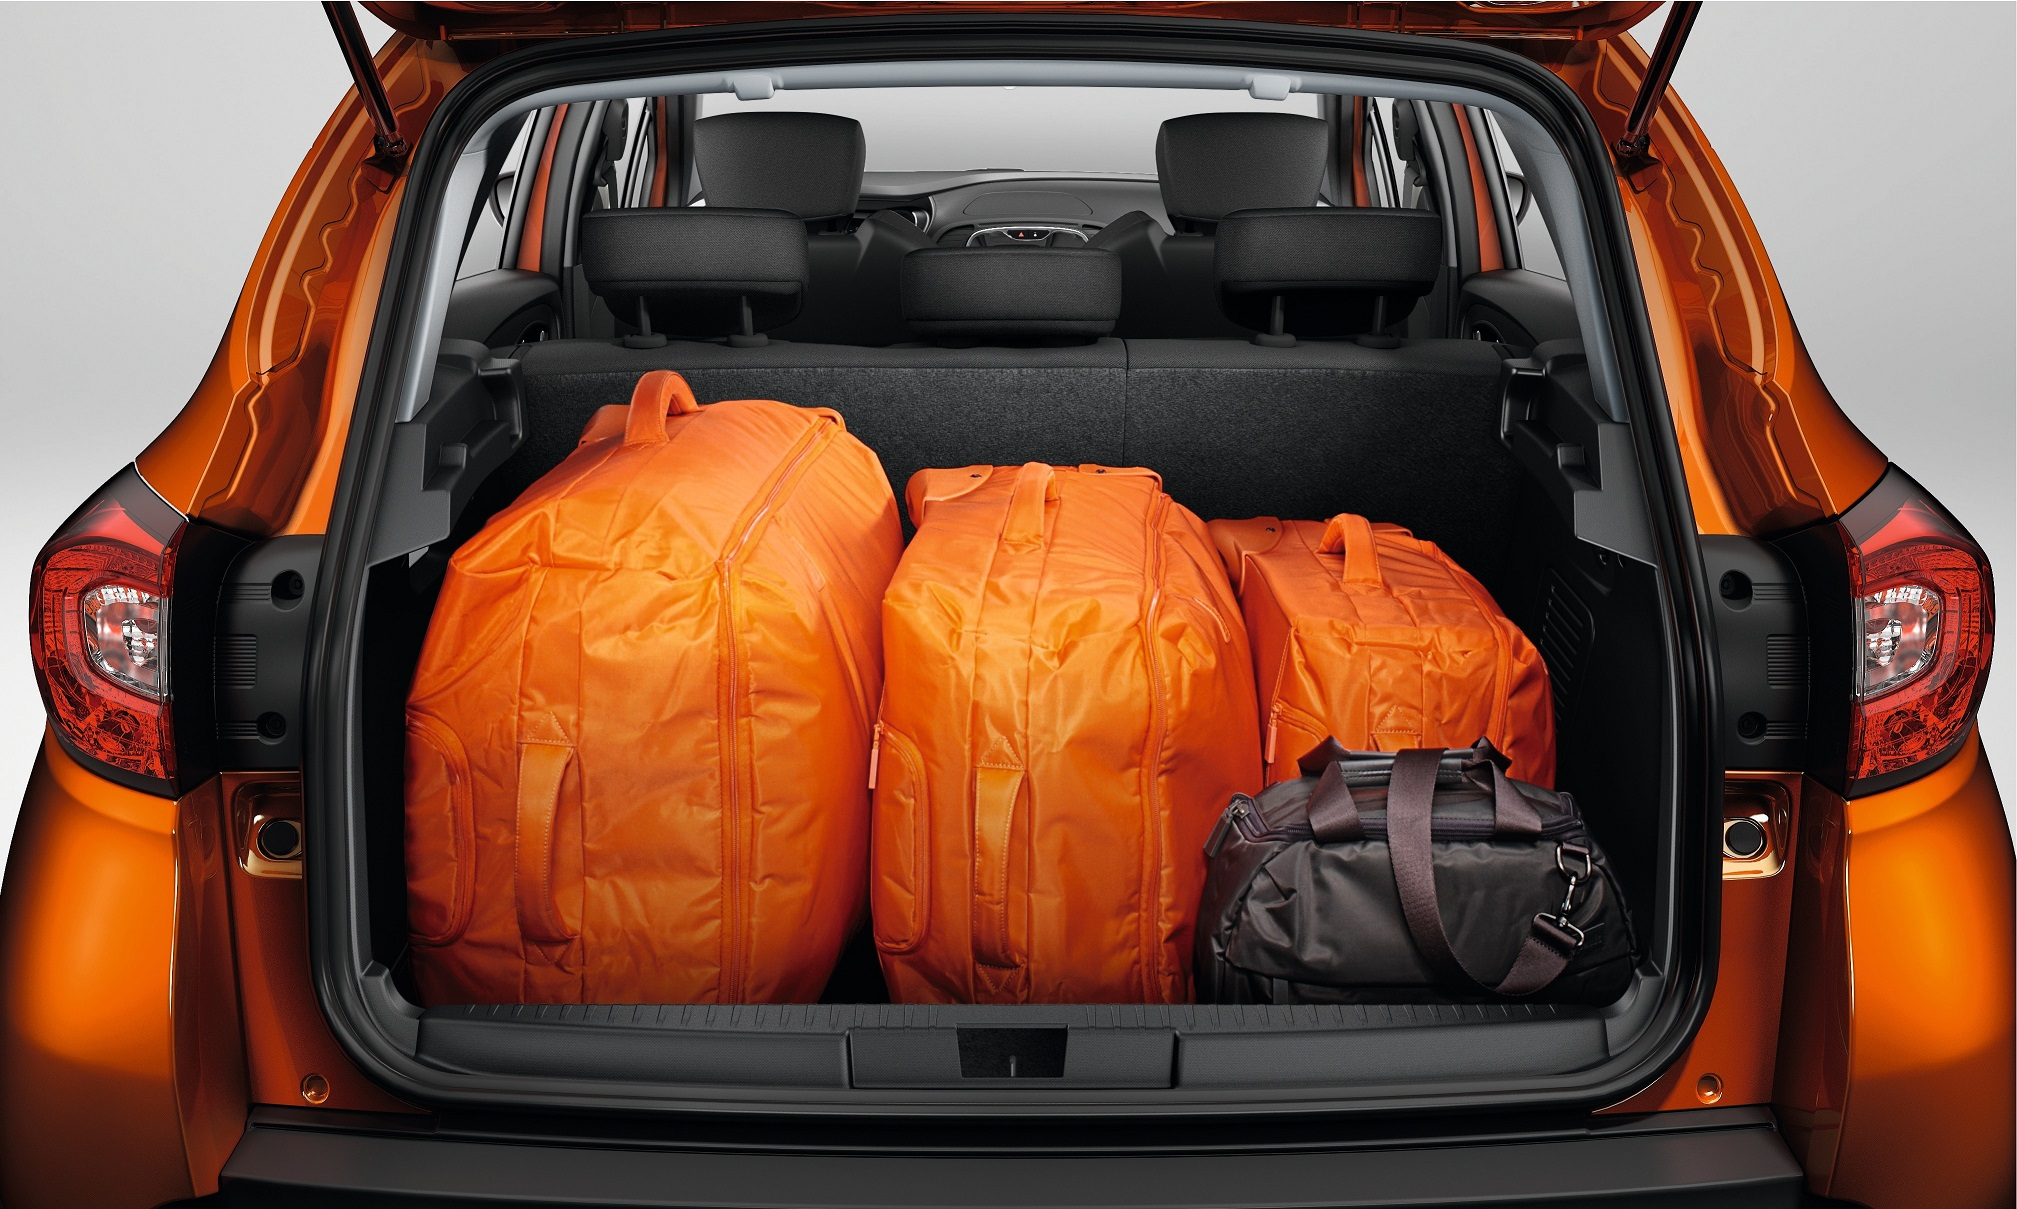 Renault Captur_Modular boot offers 377 to 455 litres of space